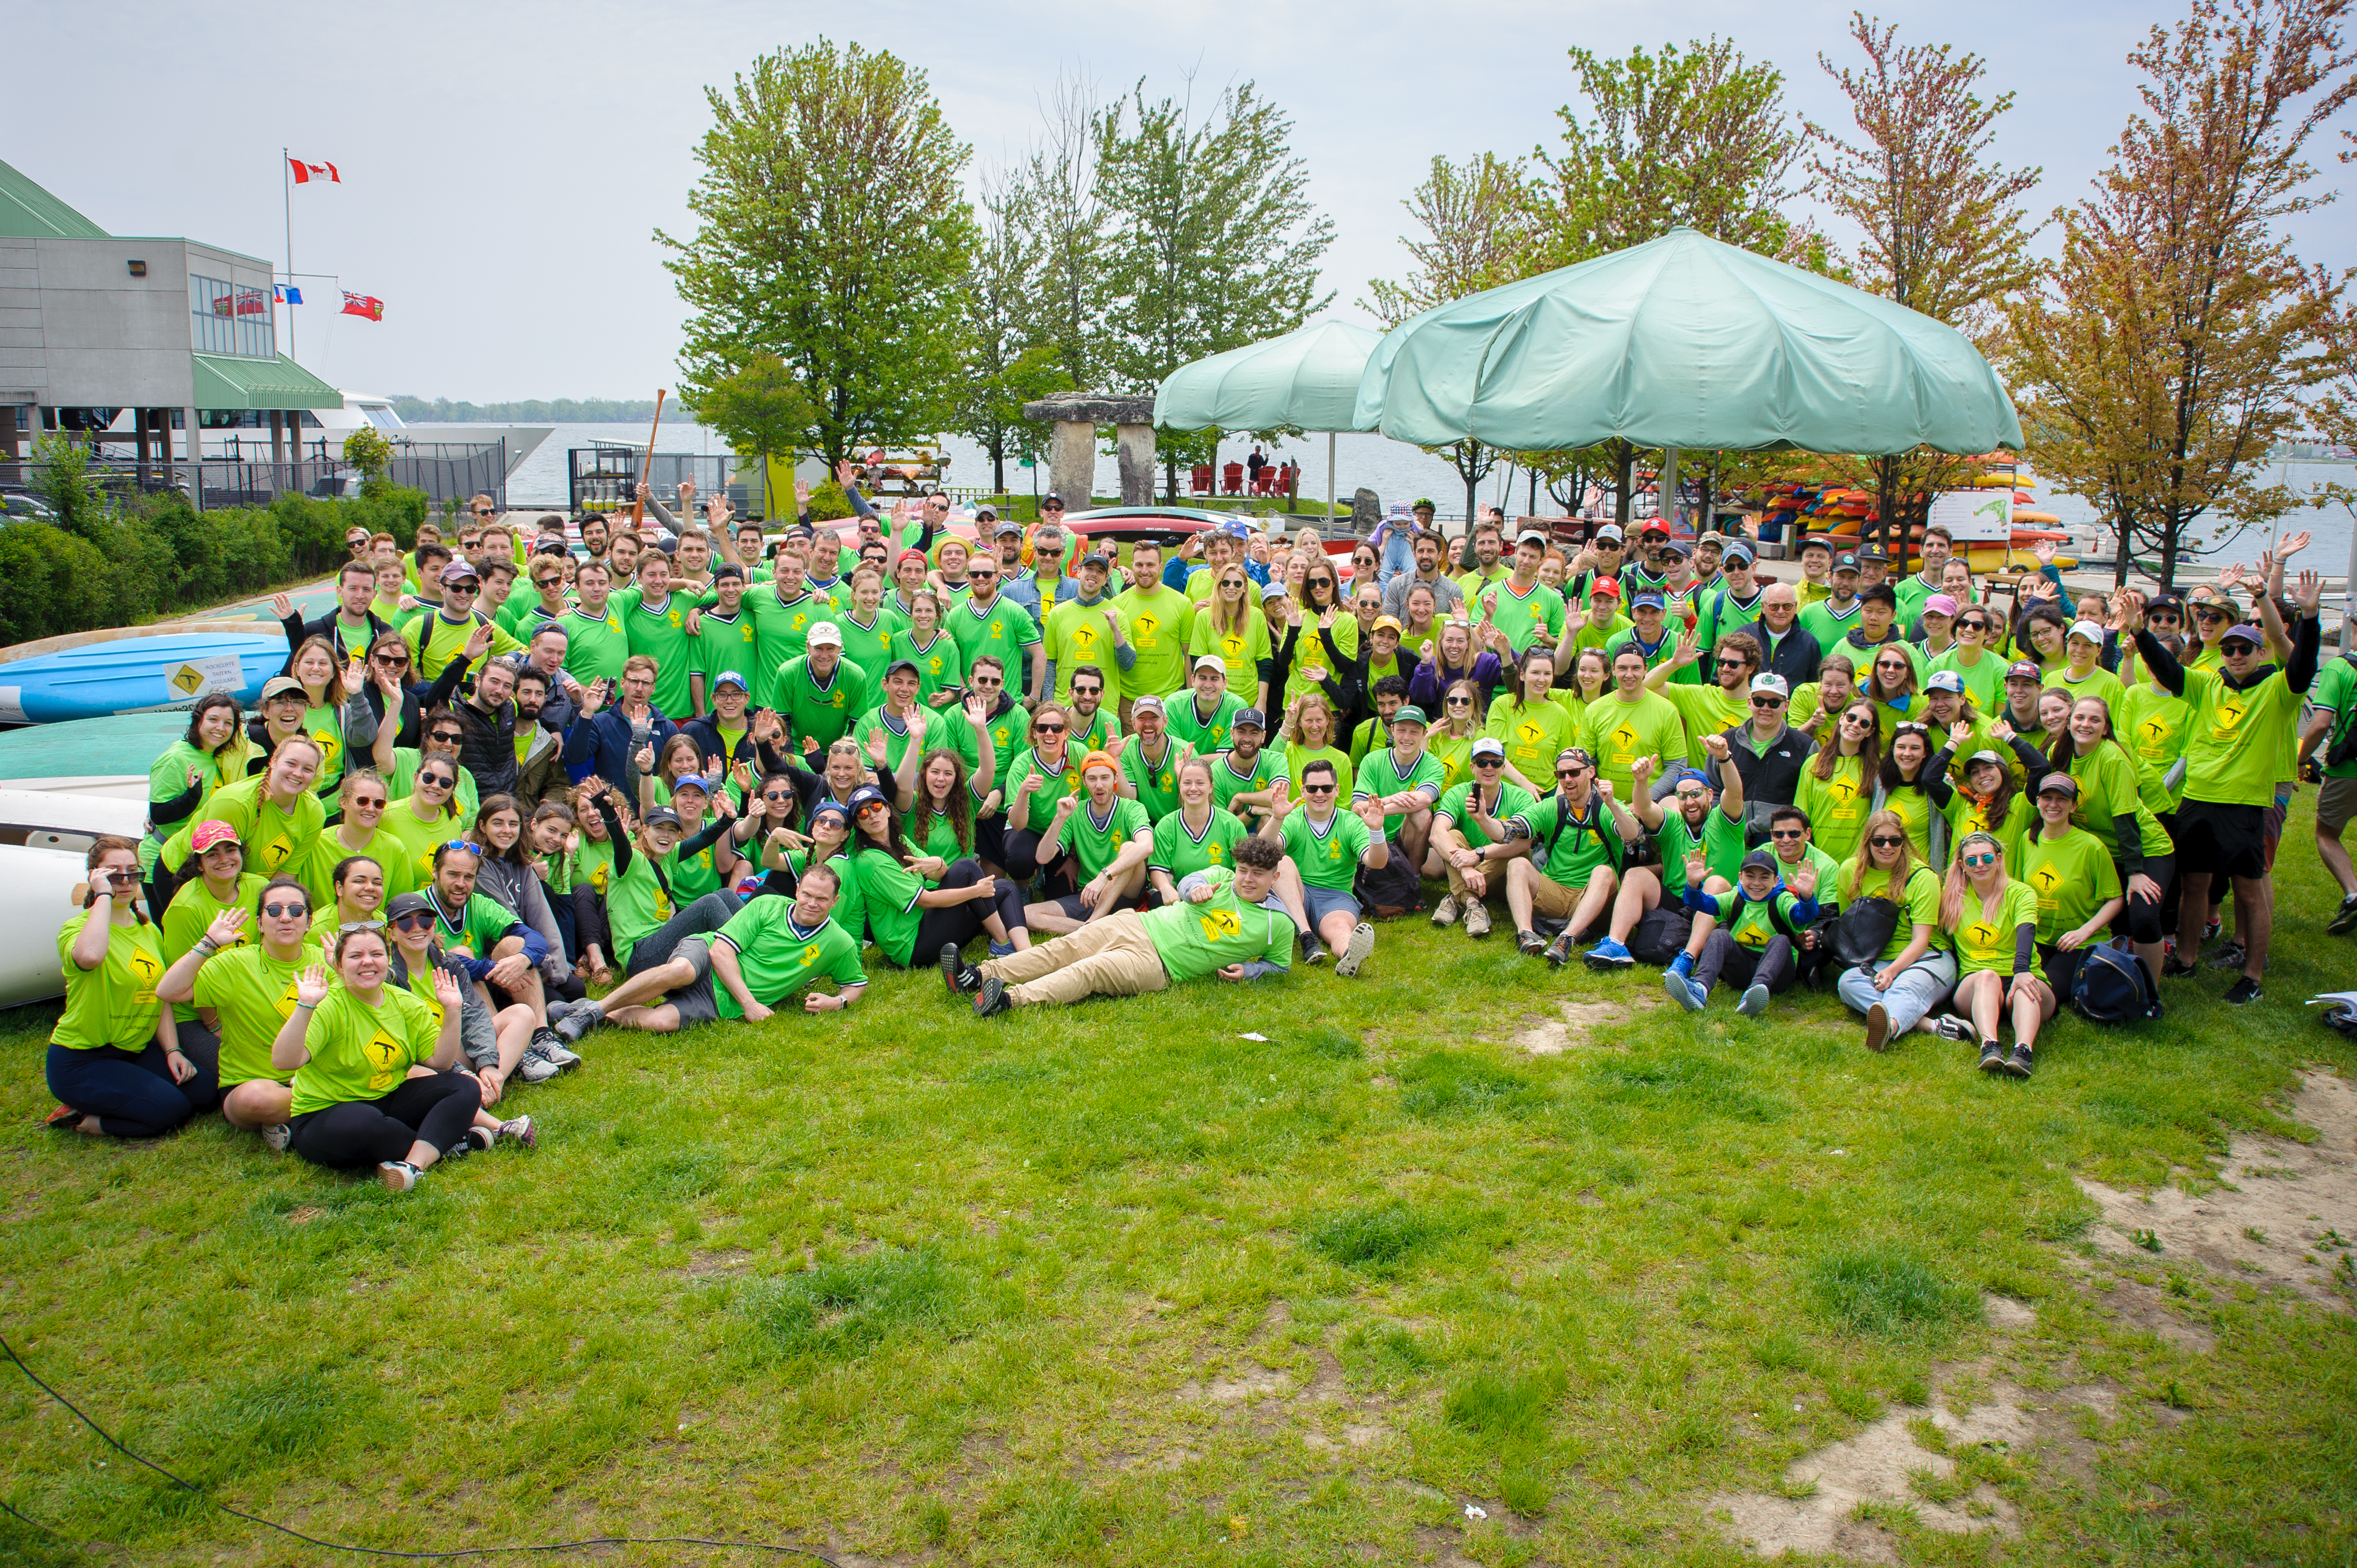 Canoe Heads for Kids 2019 surpasses $250,000 raised in support of Amici campers!